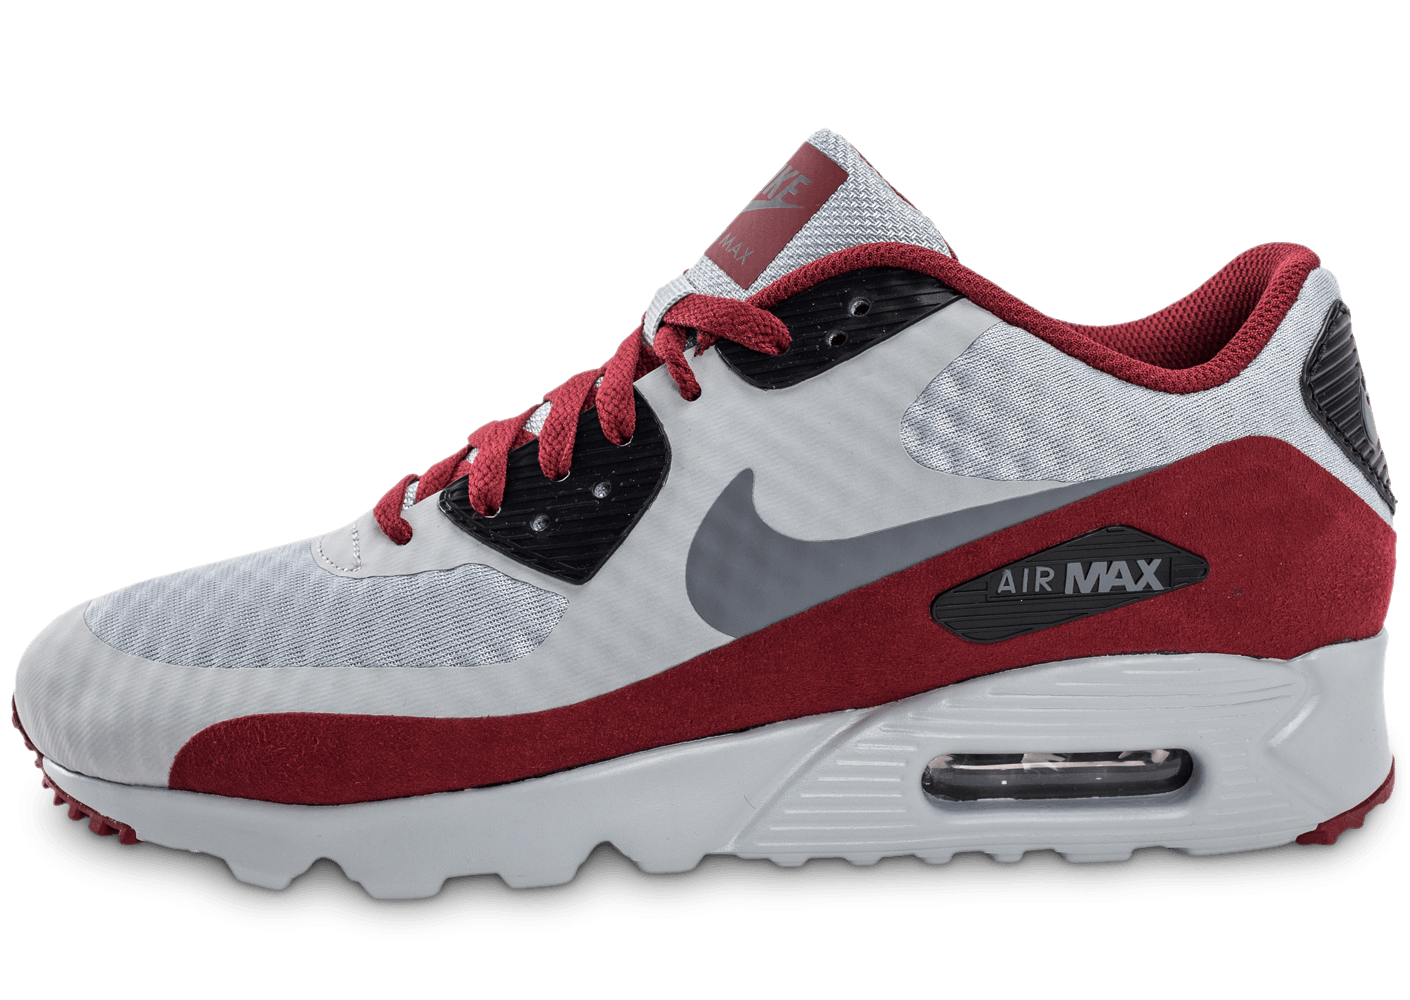 soldes nike air max 90 ultra essential grise et bordeaux chaussures homme chausport. Black Bedroom Furniture Sets. Home Design Ideas